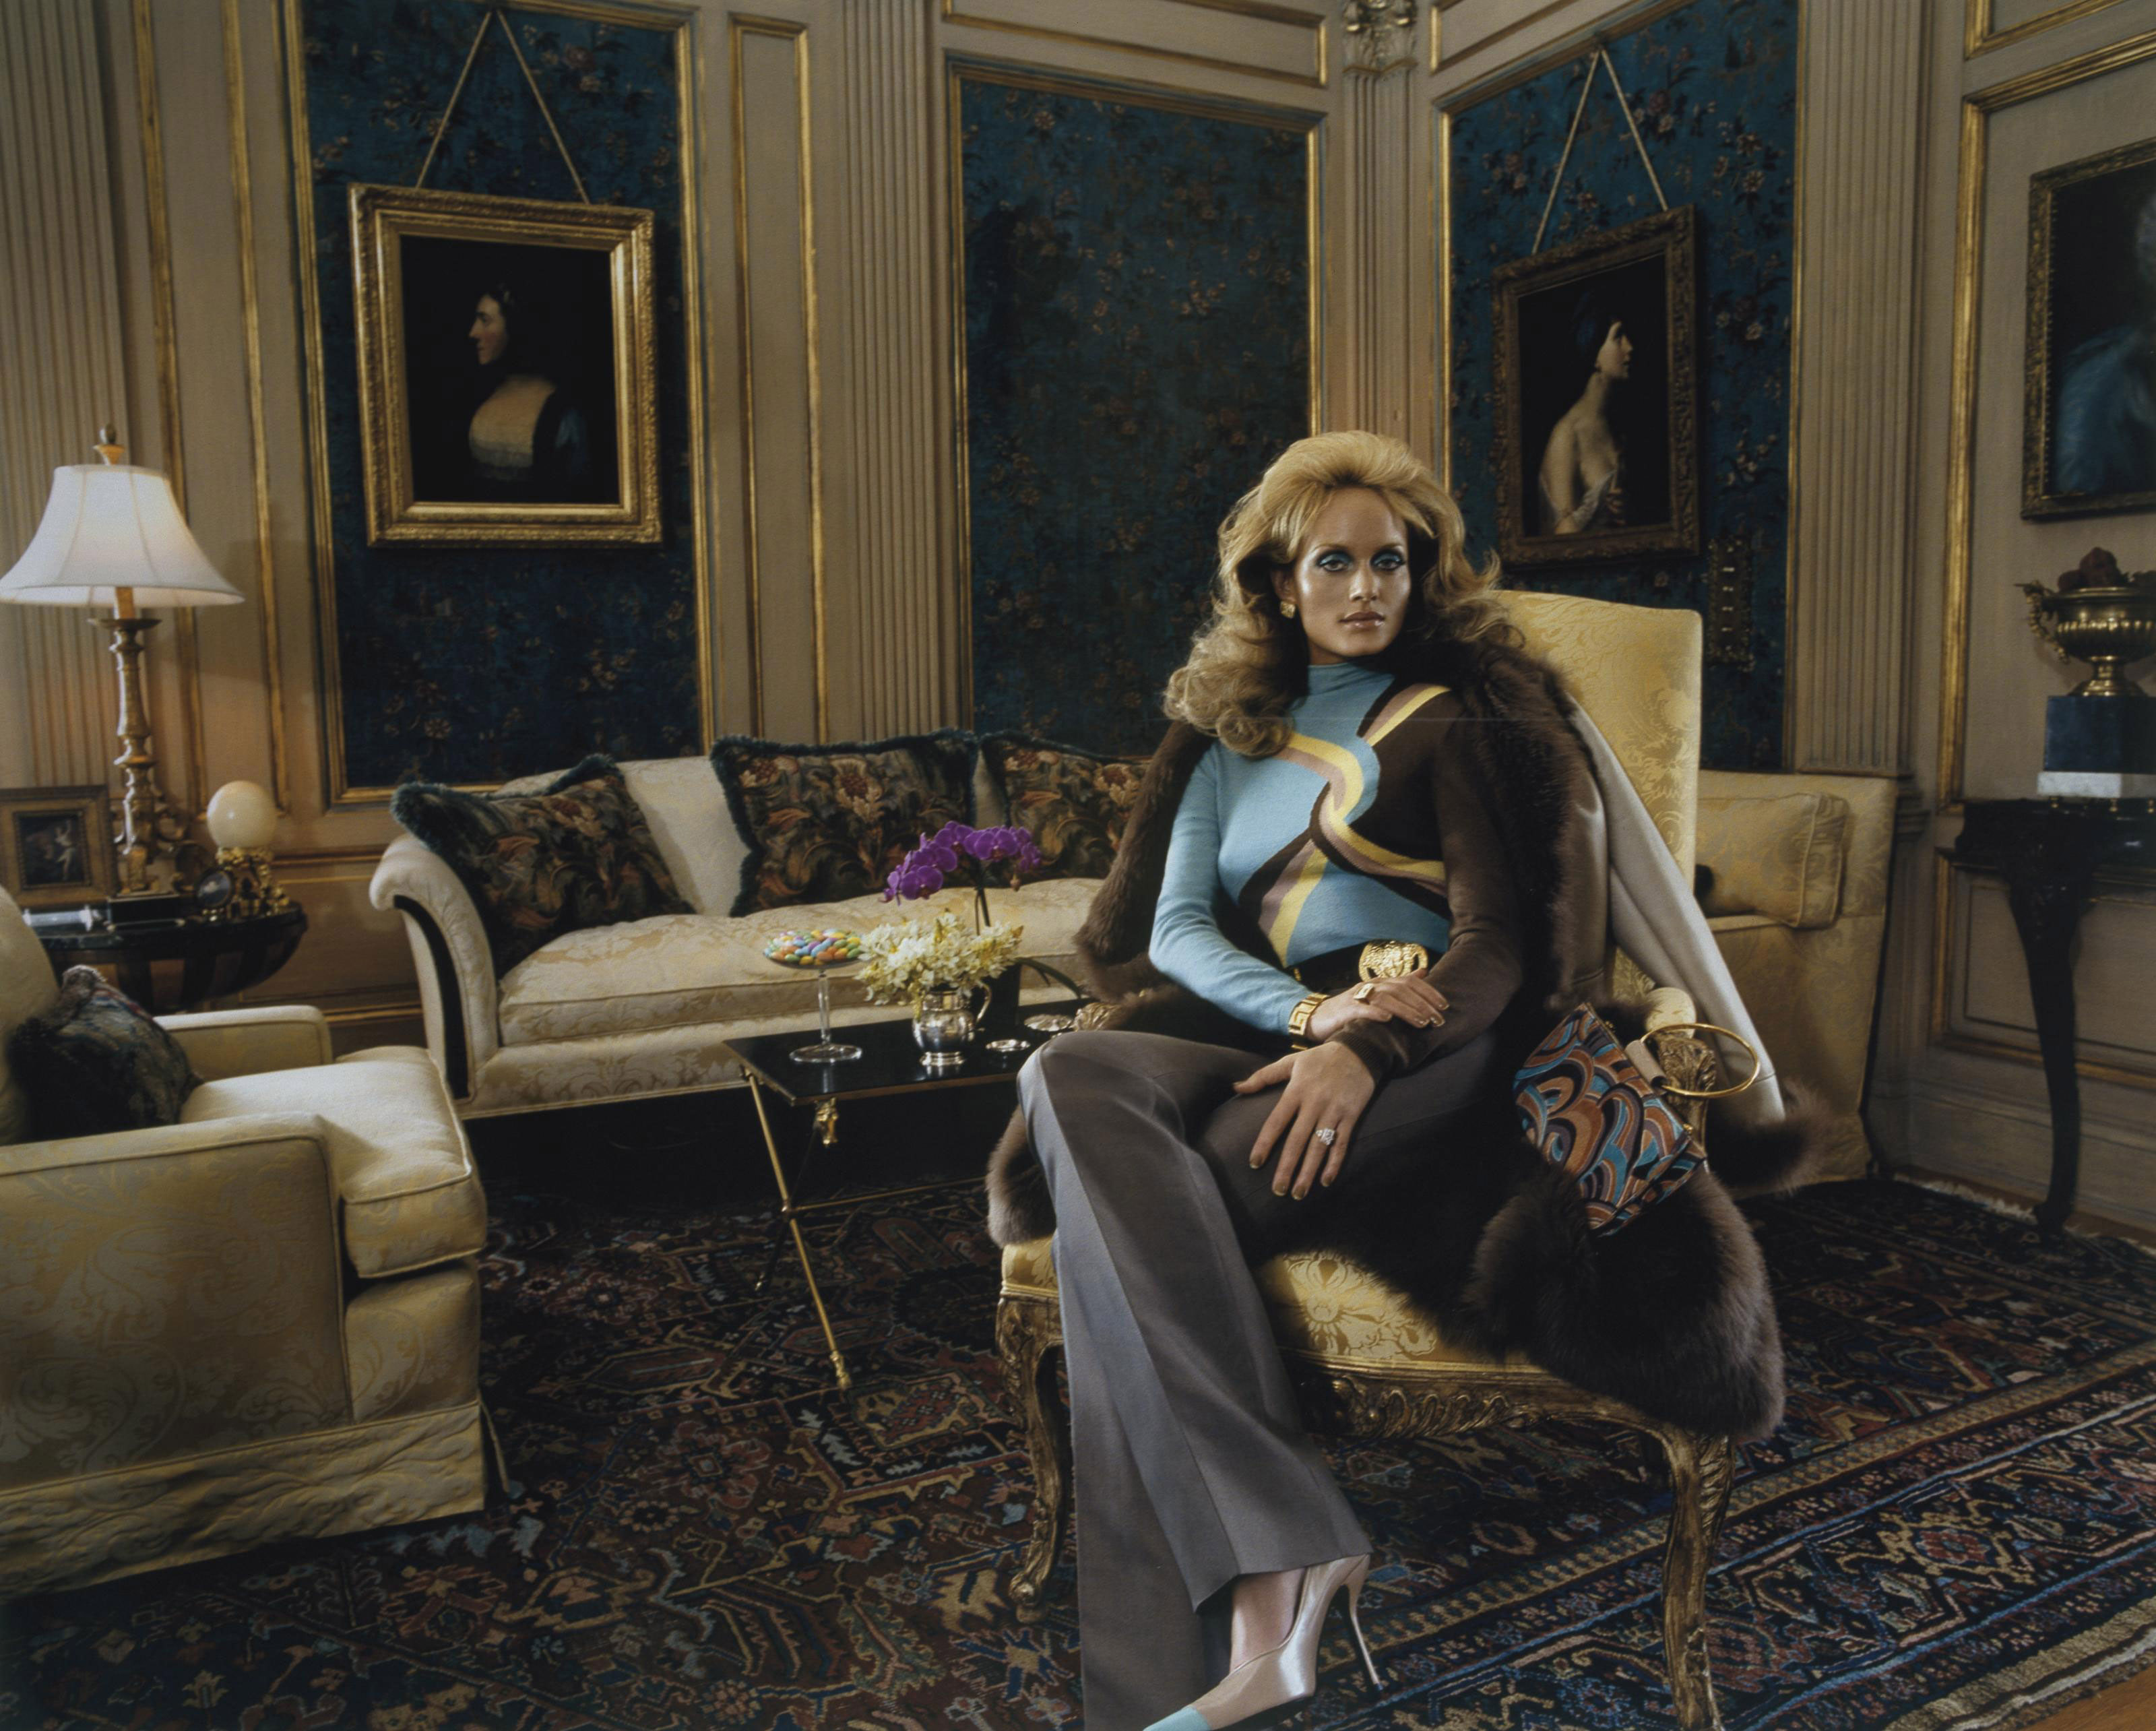 Untitled XIII (From Four Days in LA : The Versace Pictures)